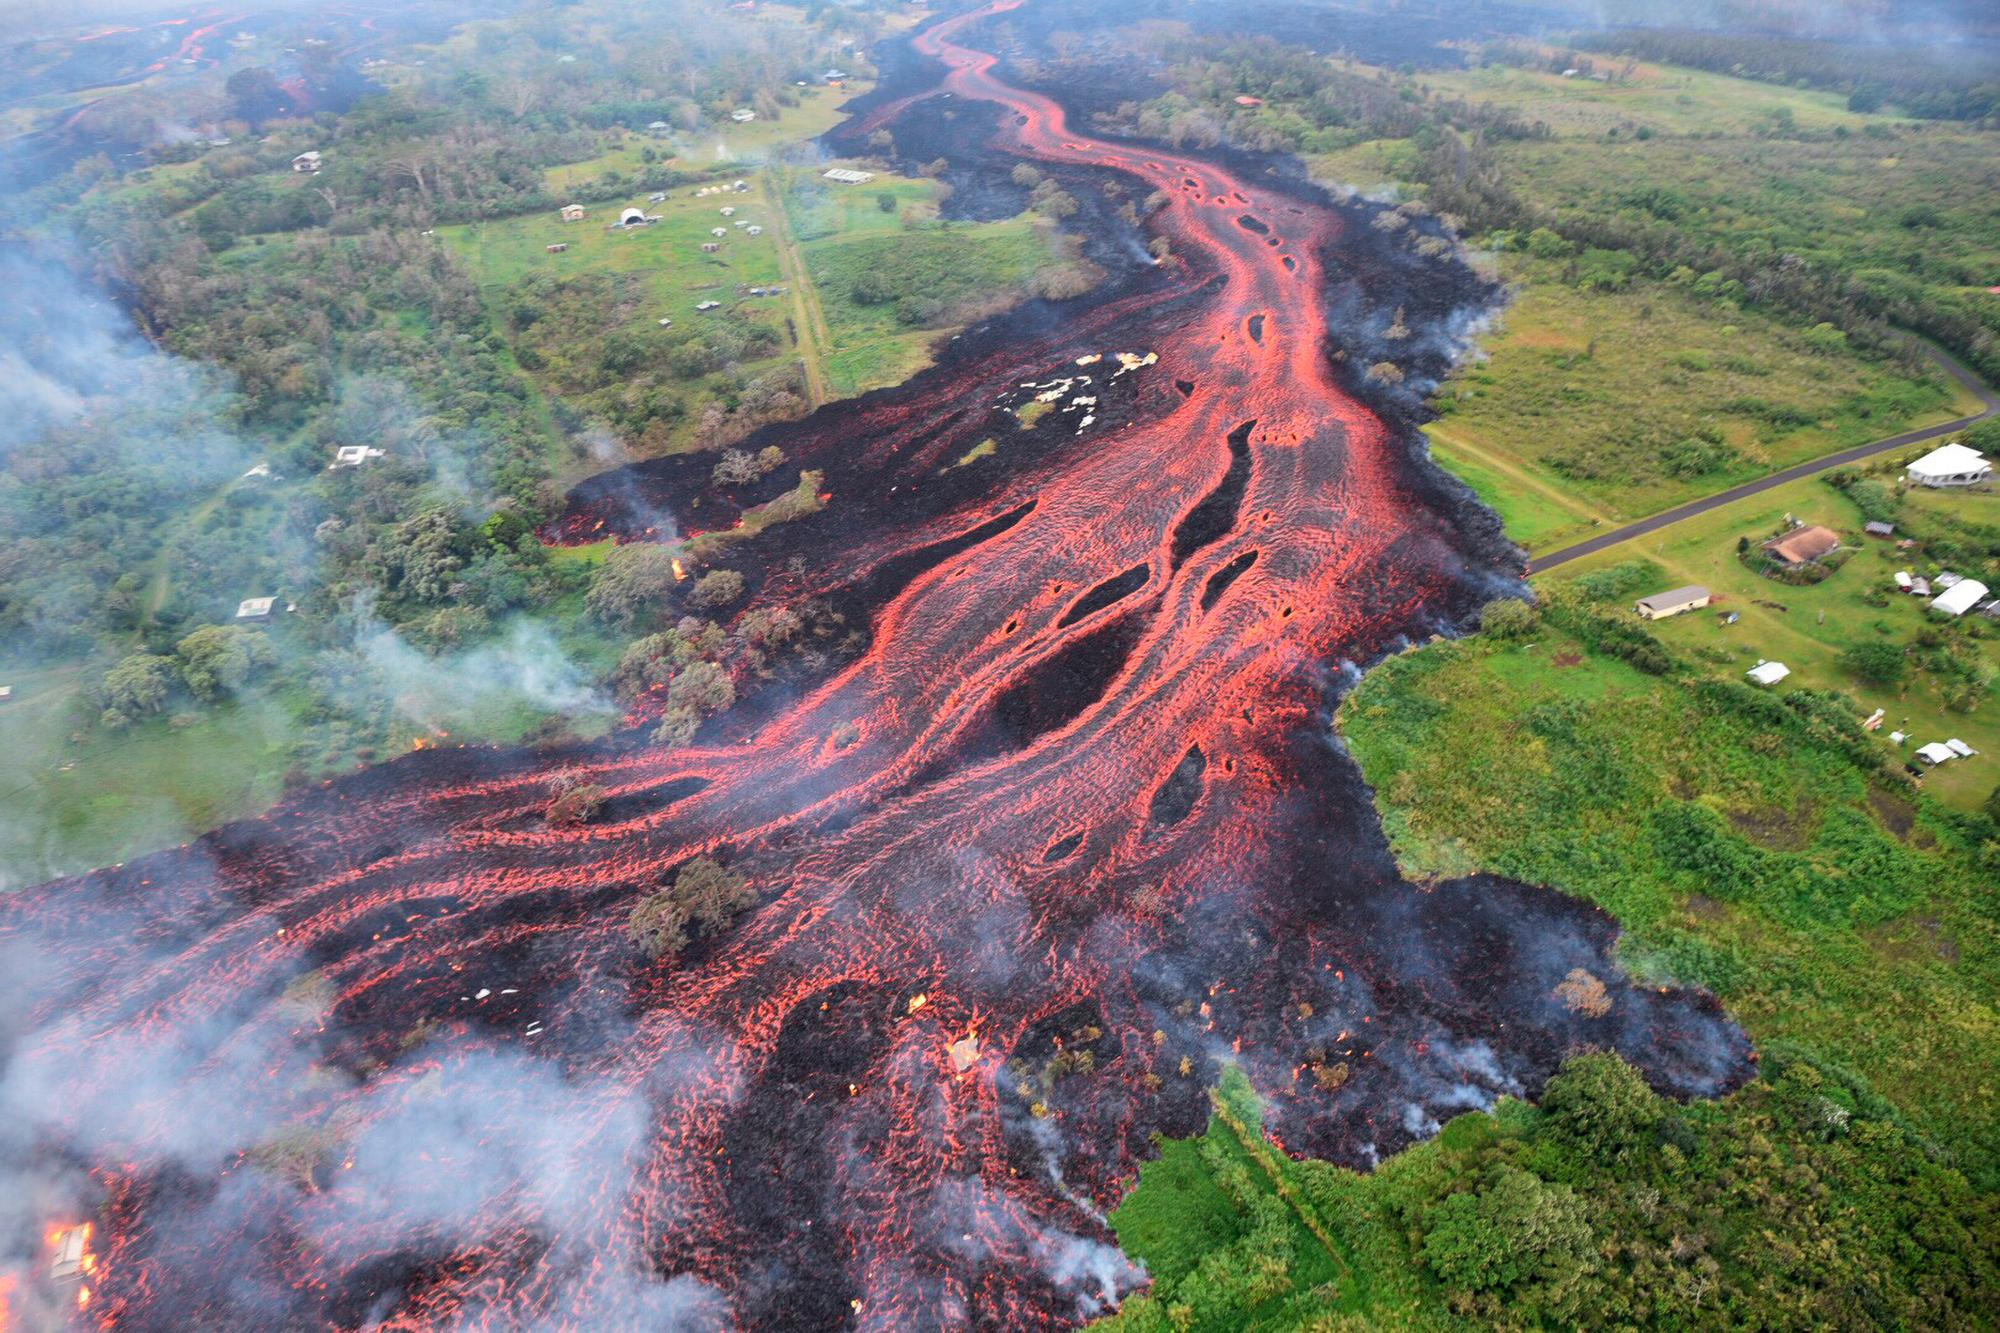 FILE - In this May 19, 2018 aerial file photo released by the U.S. Geological Survey, lava flows from fissures near Pahoa, Hawaii. White plumes of acid and extremely fine shards of glass billowed into the sky over Hawaii as molten rock from Kilauea volcano poured into the ocean, creating yet another hazard from an eruption that began more than two weeks ago: A toxic steam cloud. (U.S. Geological Survey via AP, file)